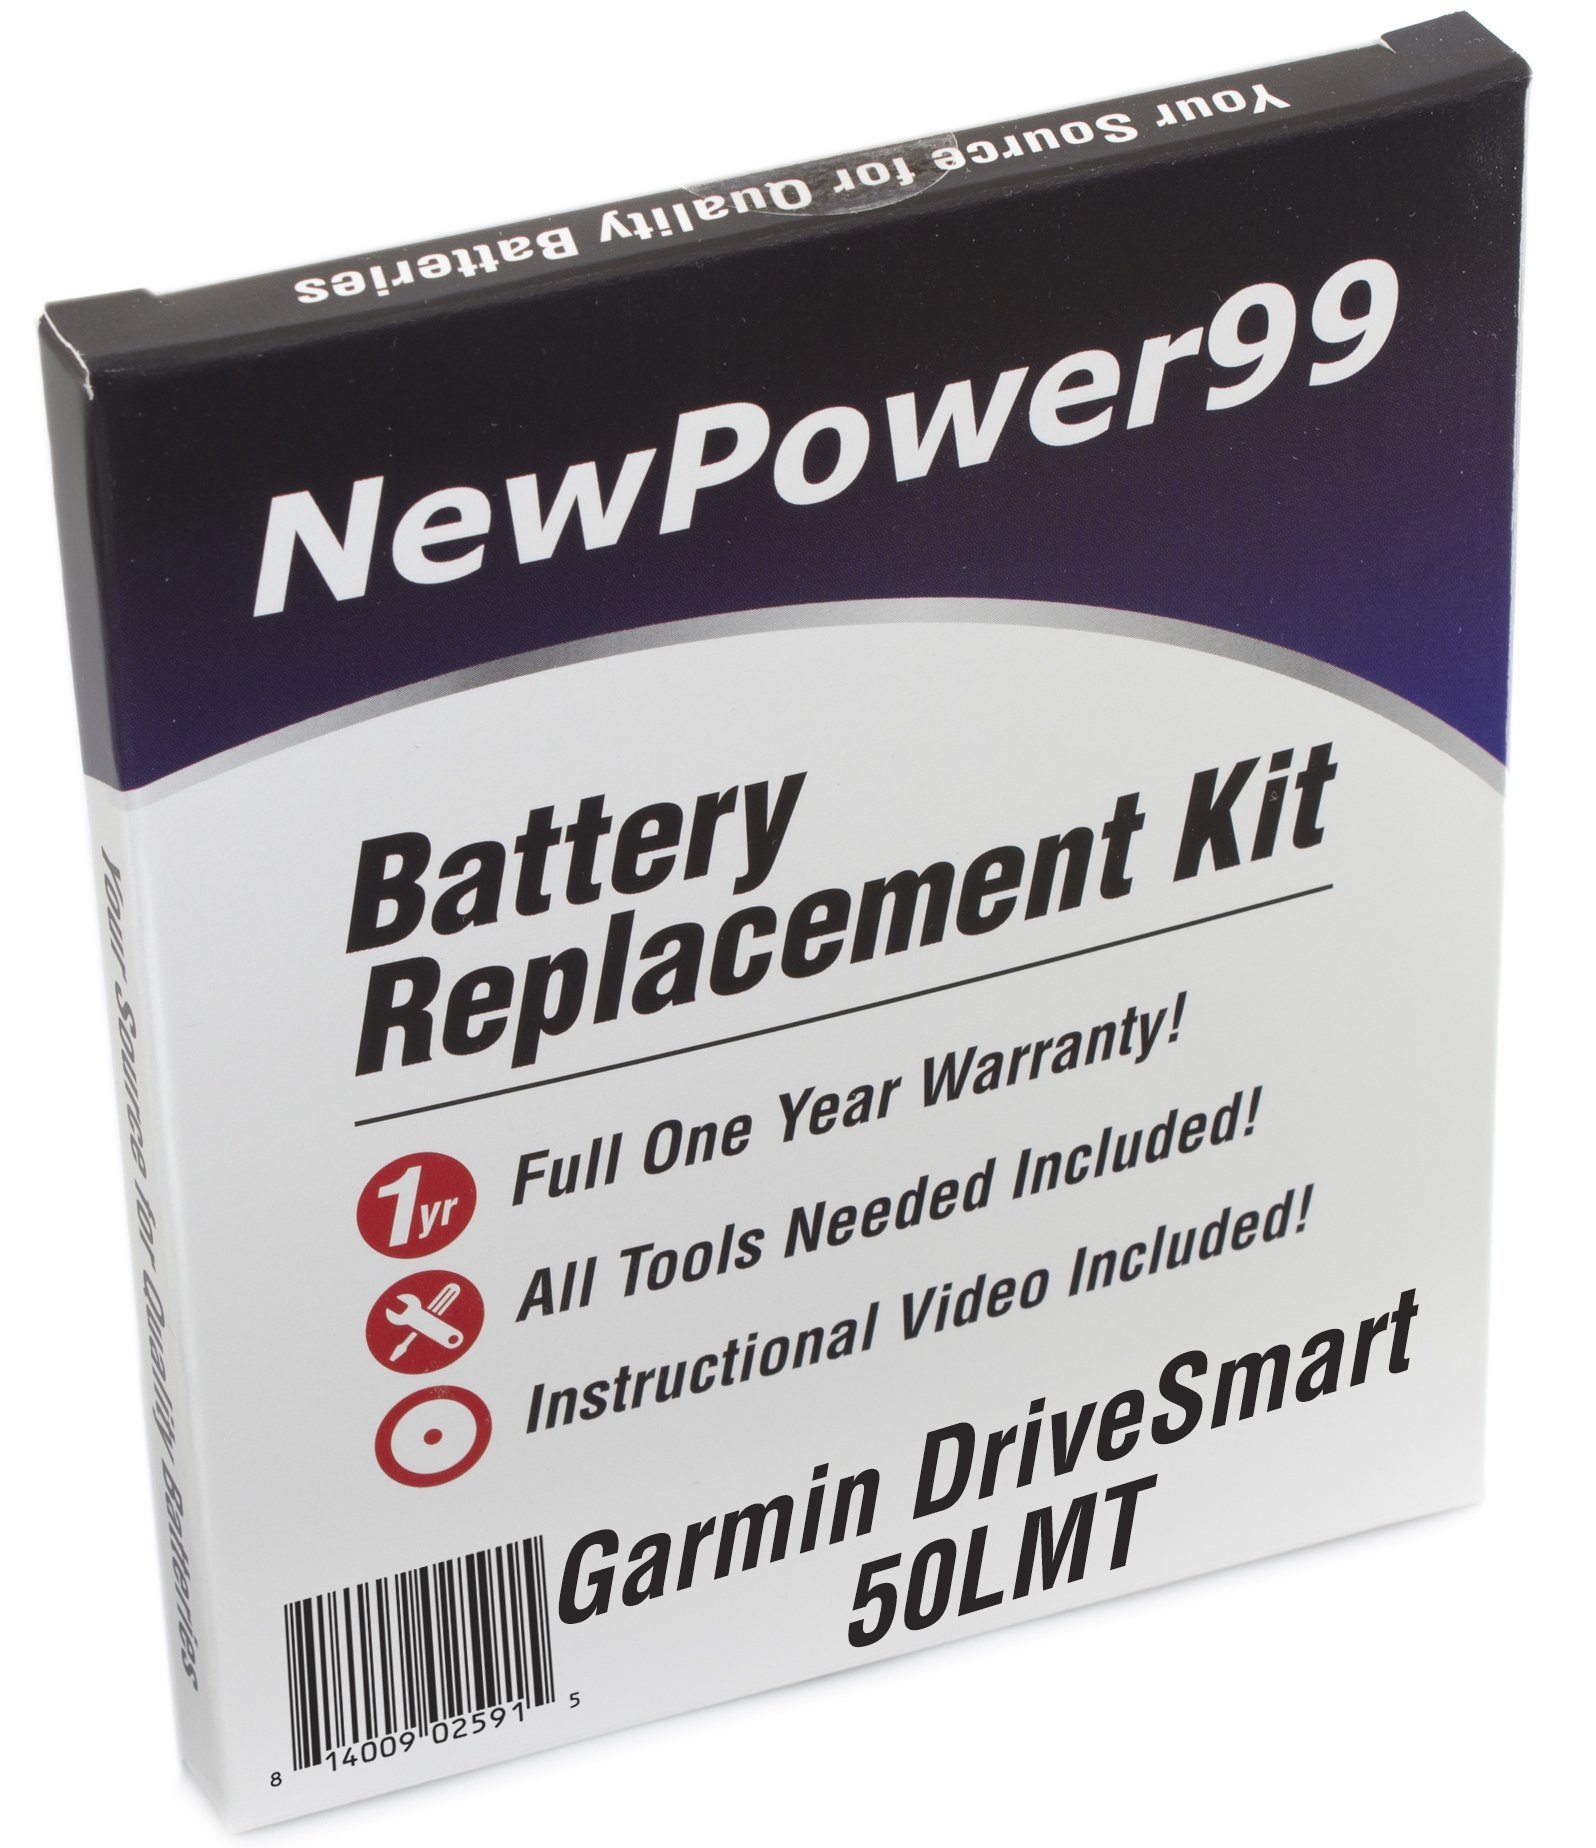 Battery Replacement Kit for Garmin DriveSmart 50LMT with Installation Video, Tools, and Extended Life Battery. by NewPower99 (Image #1)